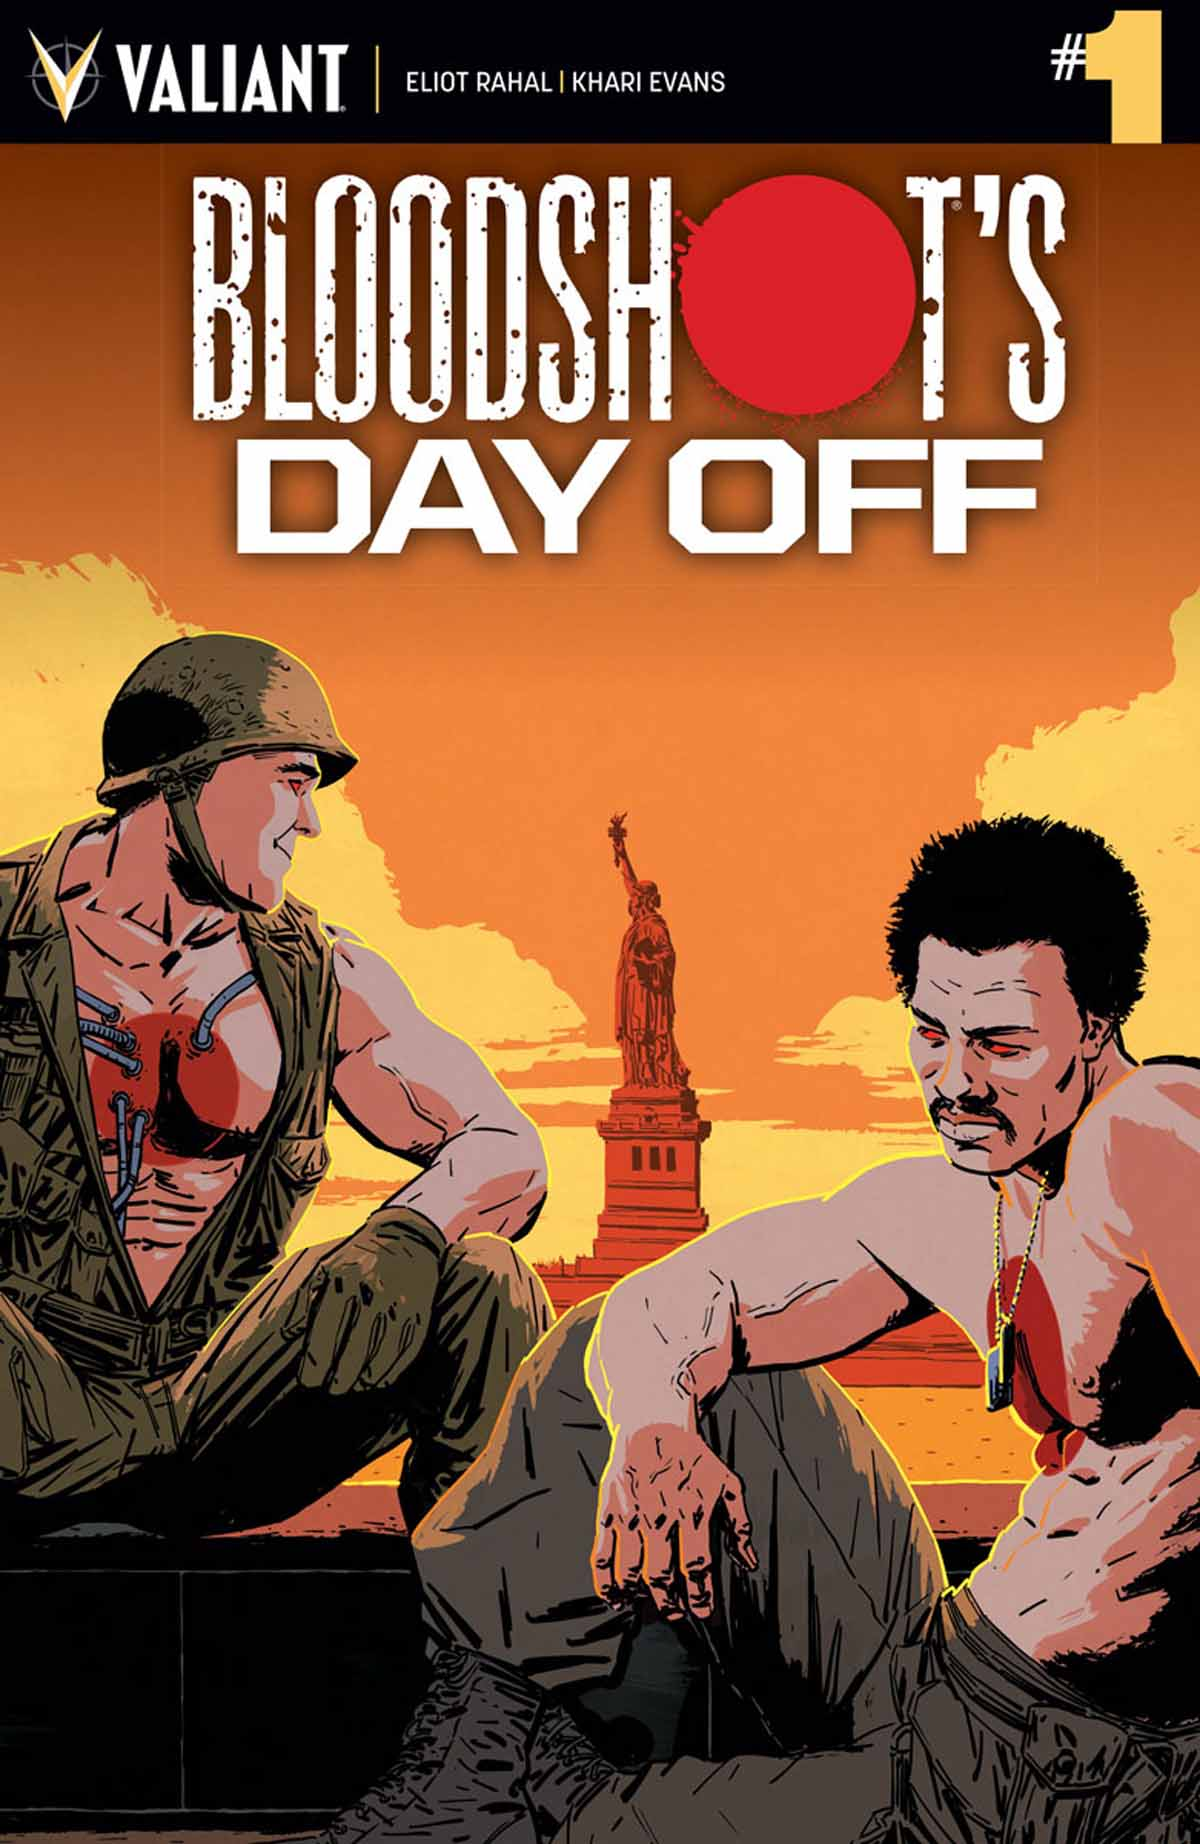 Bloodshot's Day Off